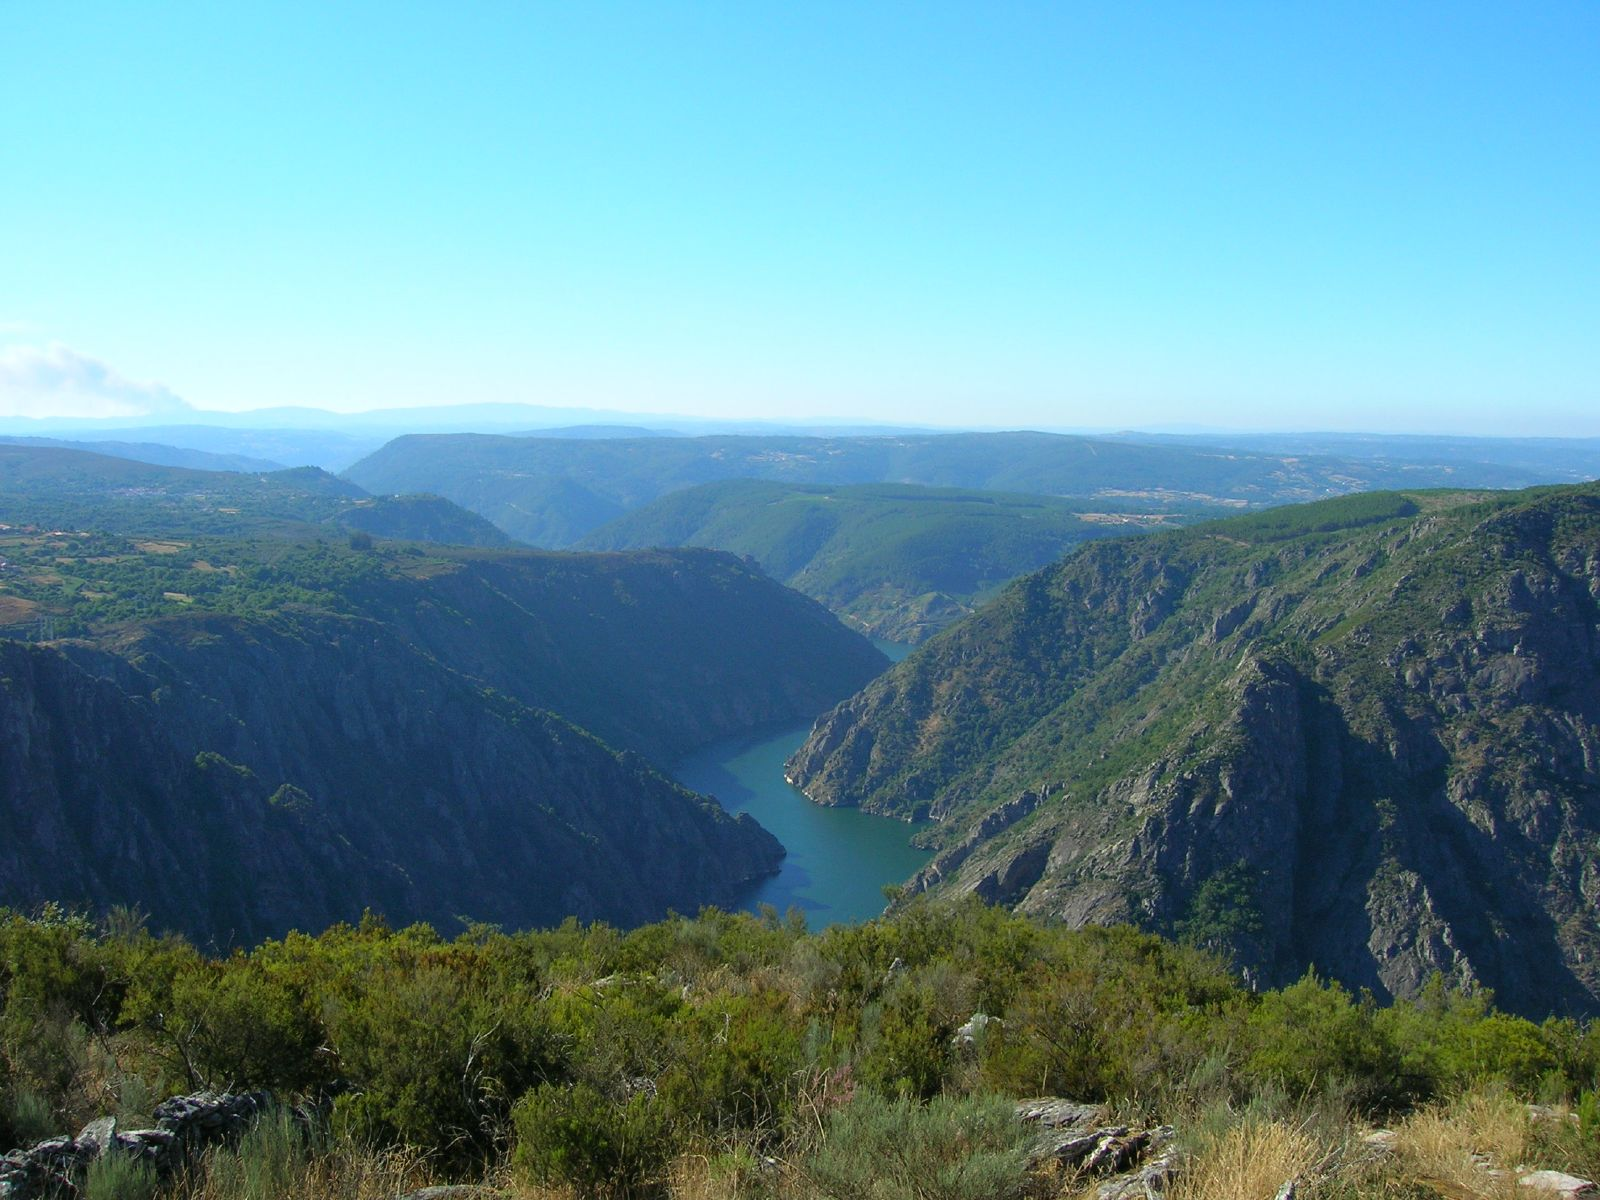 The Sil river canyon